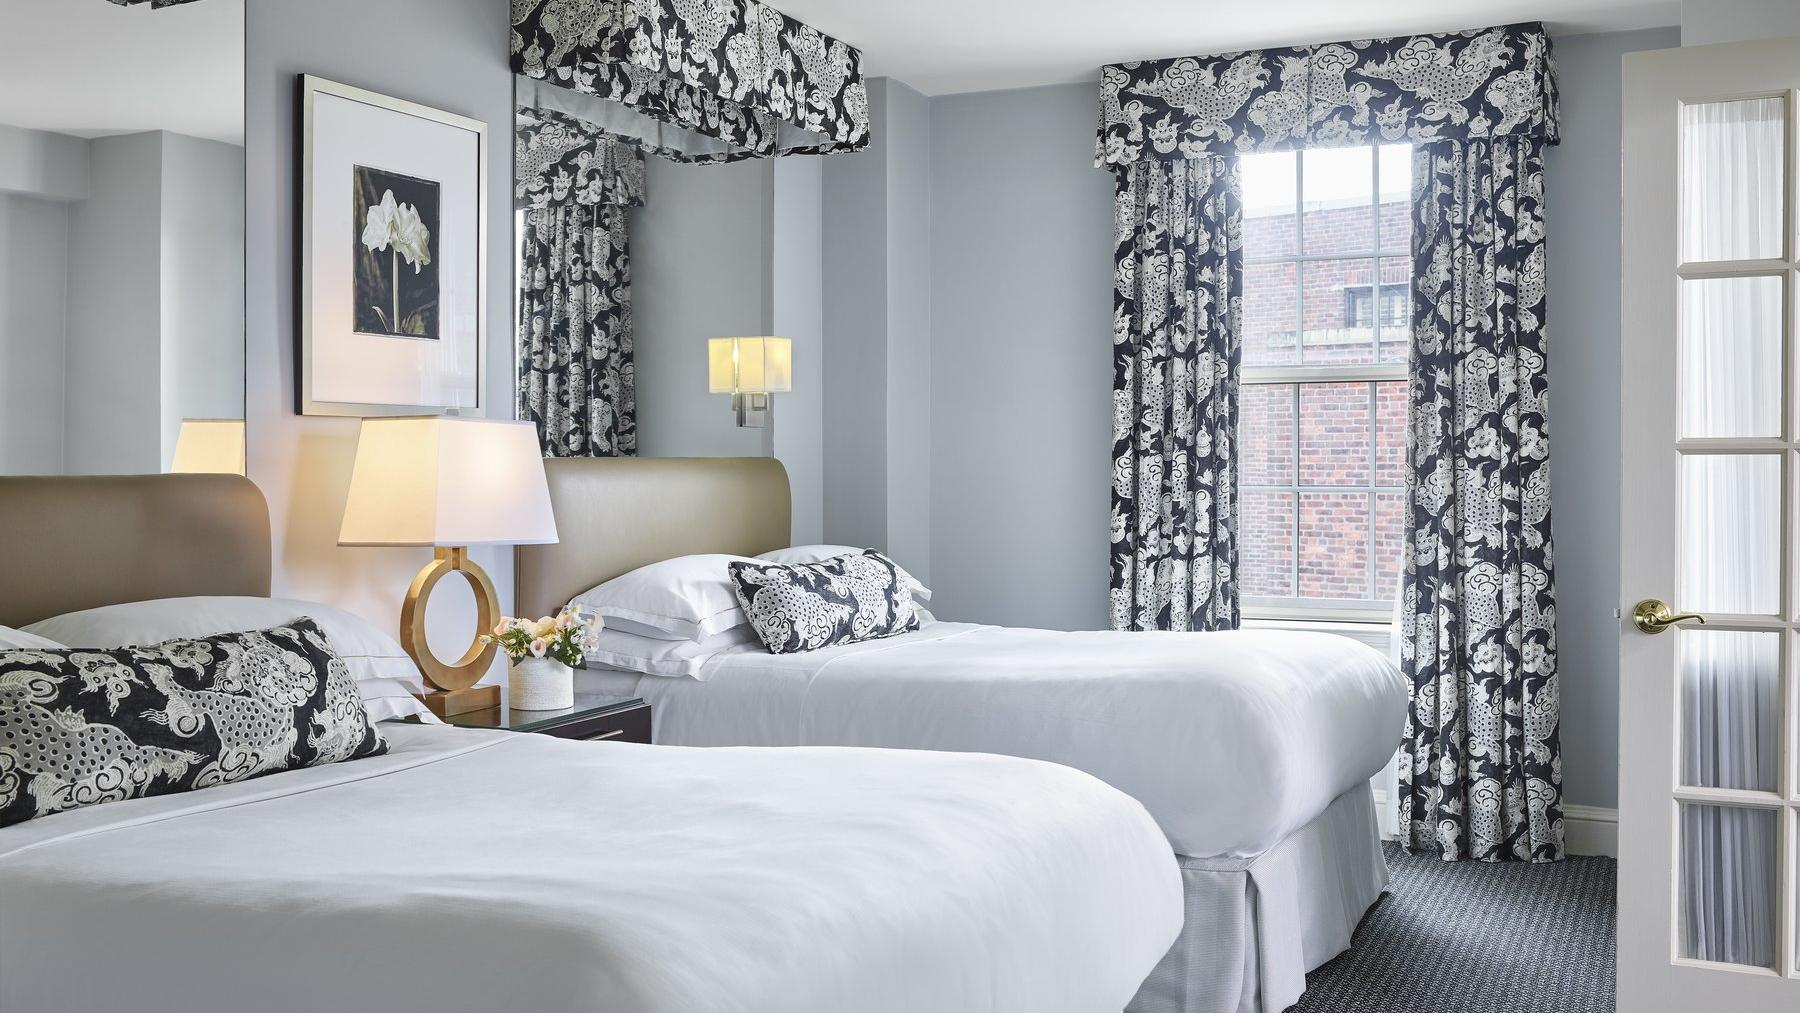 Grey colored room with two queen beds and window.